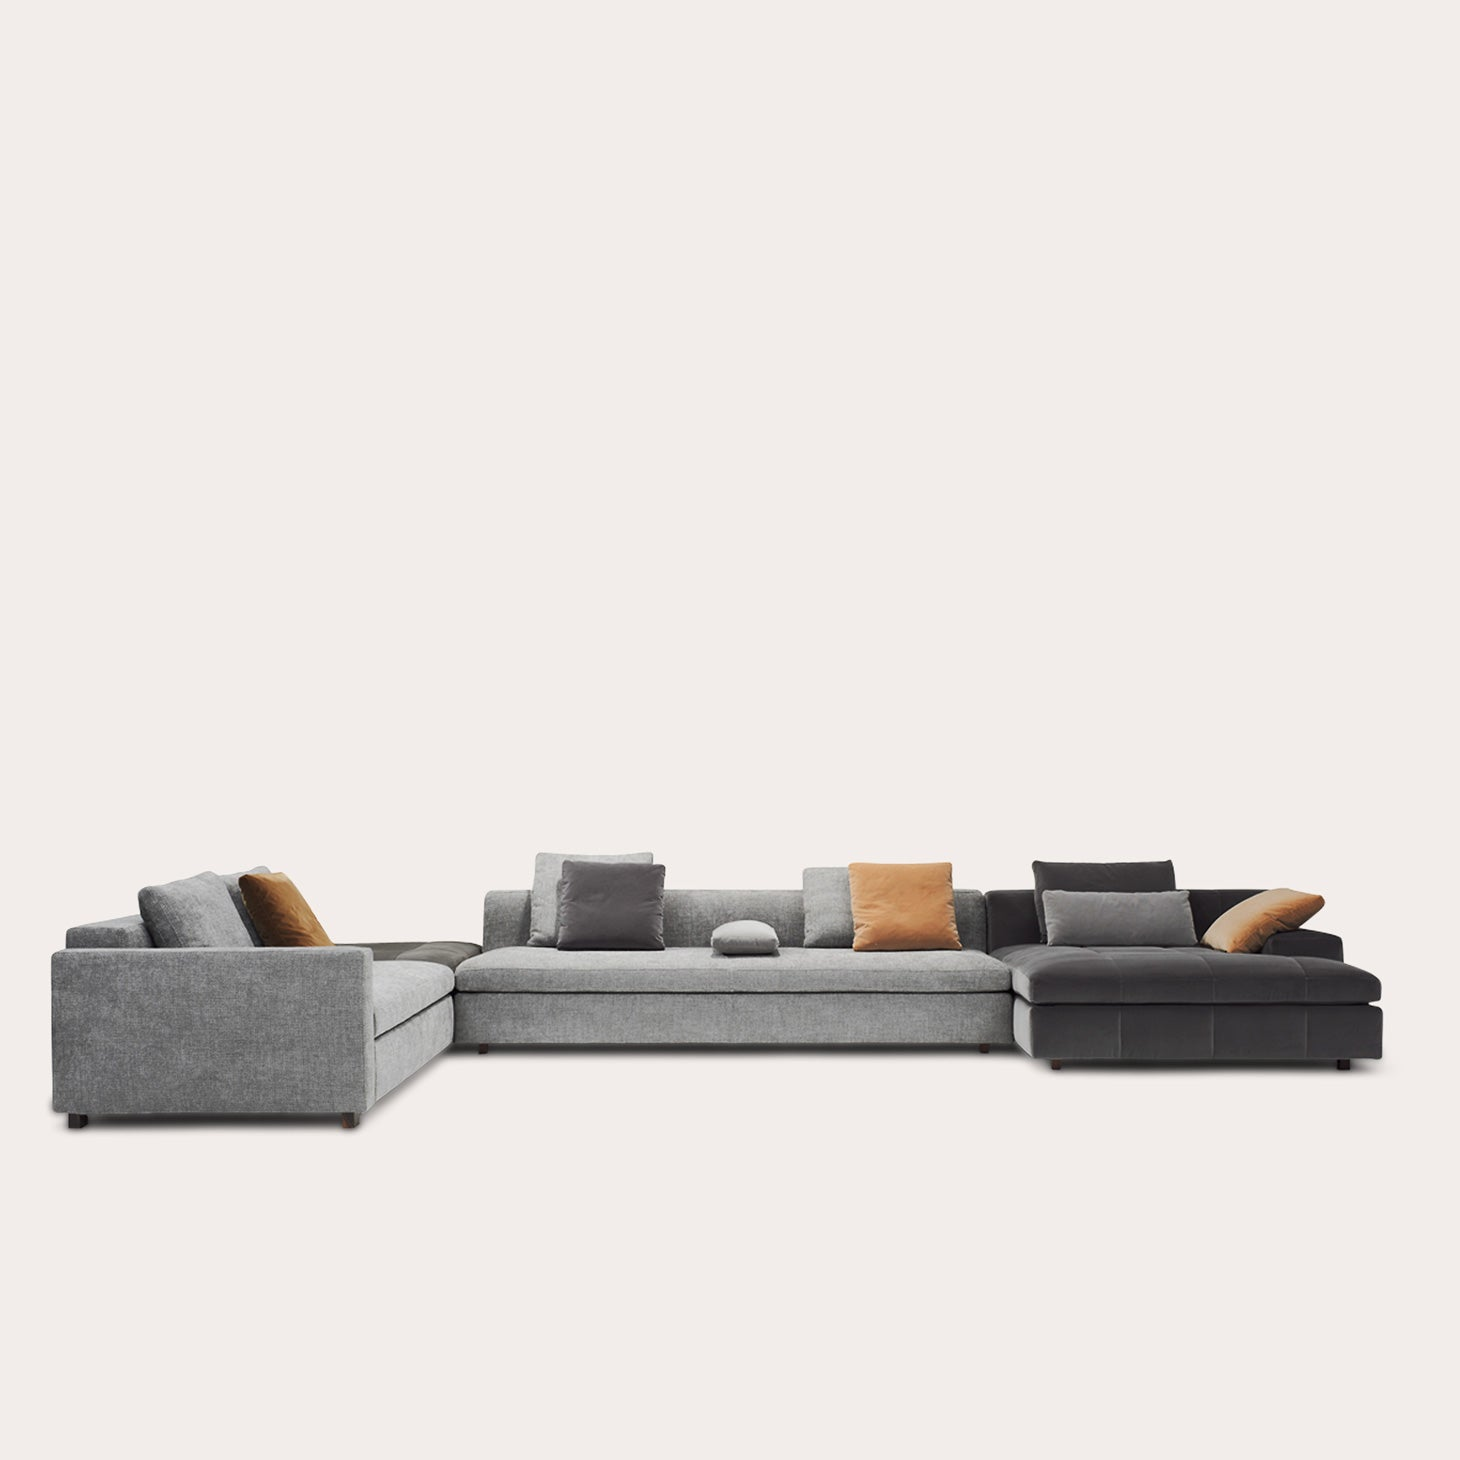 Madison Sofa Seating Jan te Lintelo Designer Furniture Sku: 247-240-10378